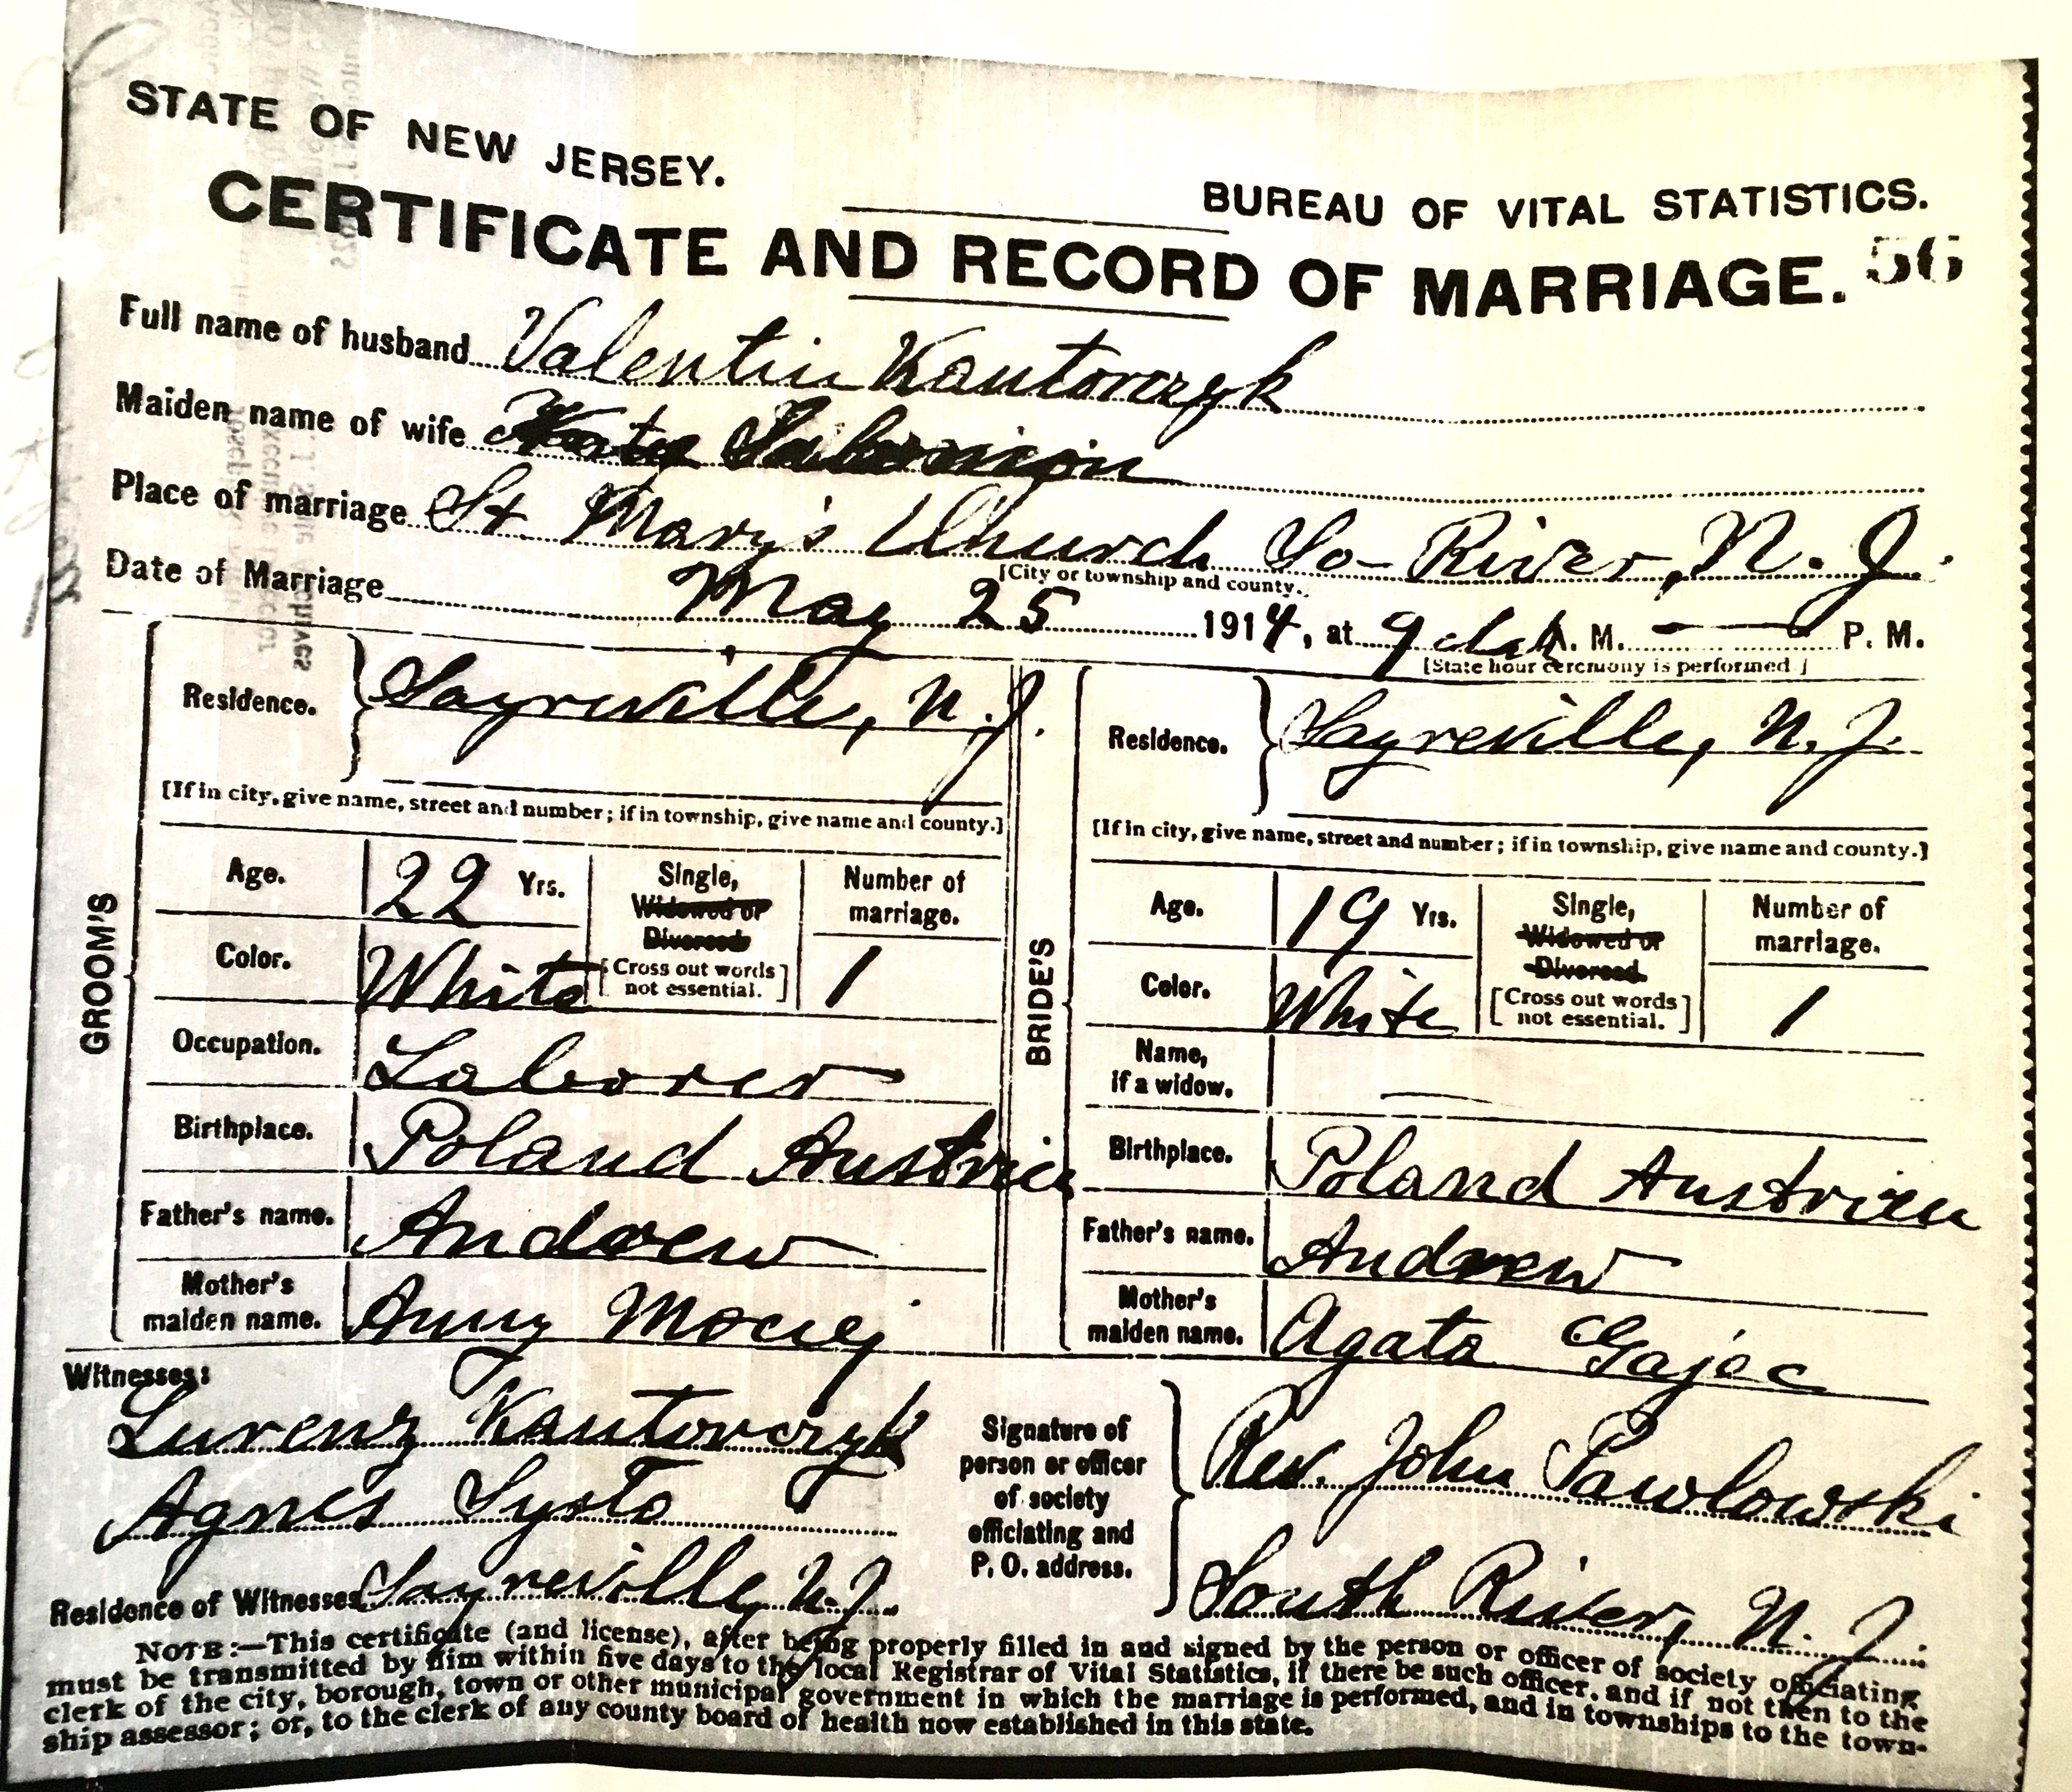 1914-05-25 Certificate of Marriage Valentine and Katrina Contorchick